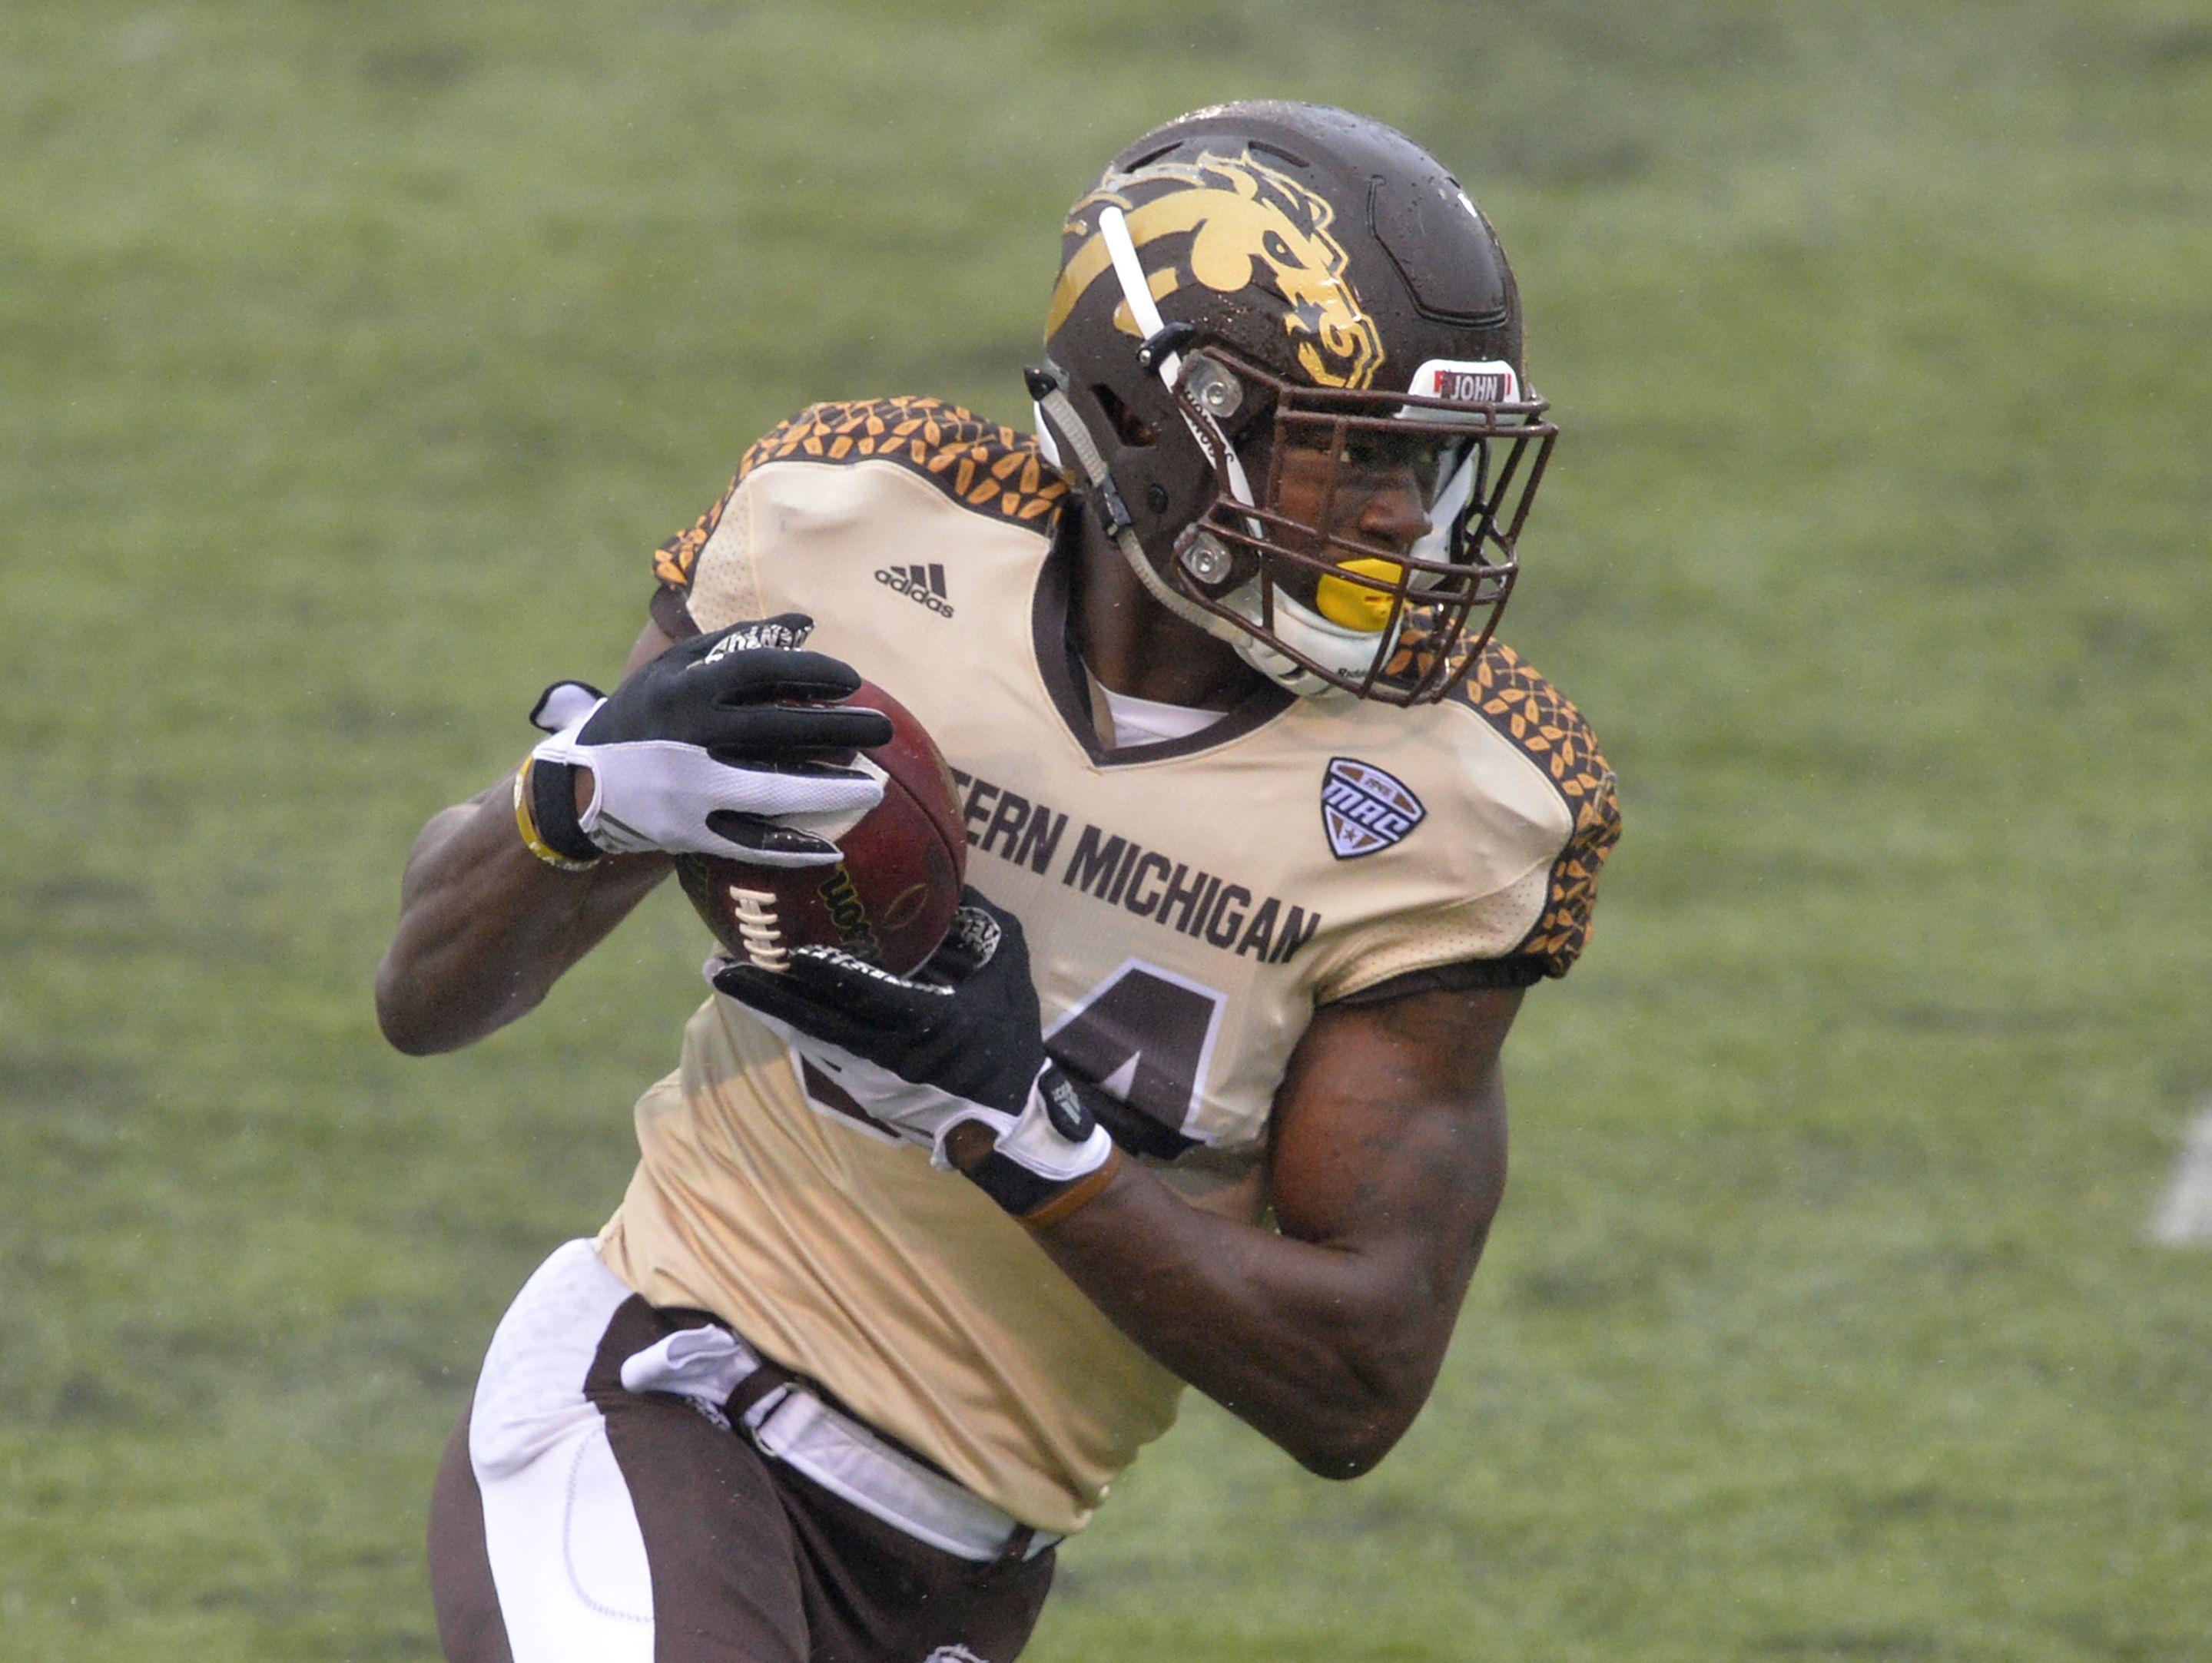 In this Nov. 27, 2015, file photo, Western Michigan wide receiver Corey Davis runs with the ball for a 30-yard touchdown reception against Toledo in an NCAA college football game in Toledo, Ohio.